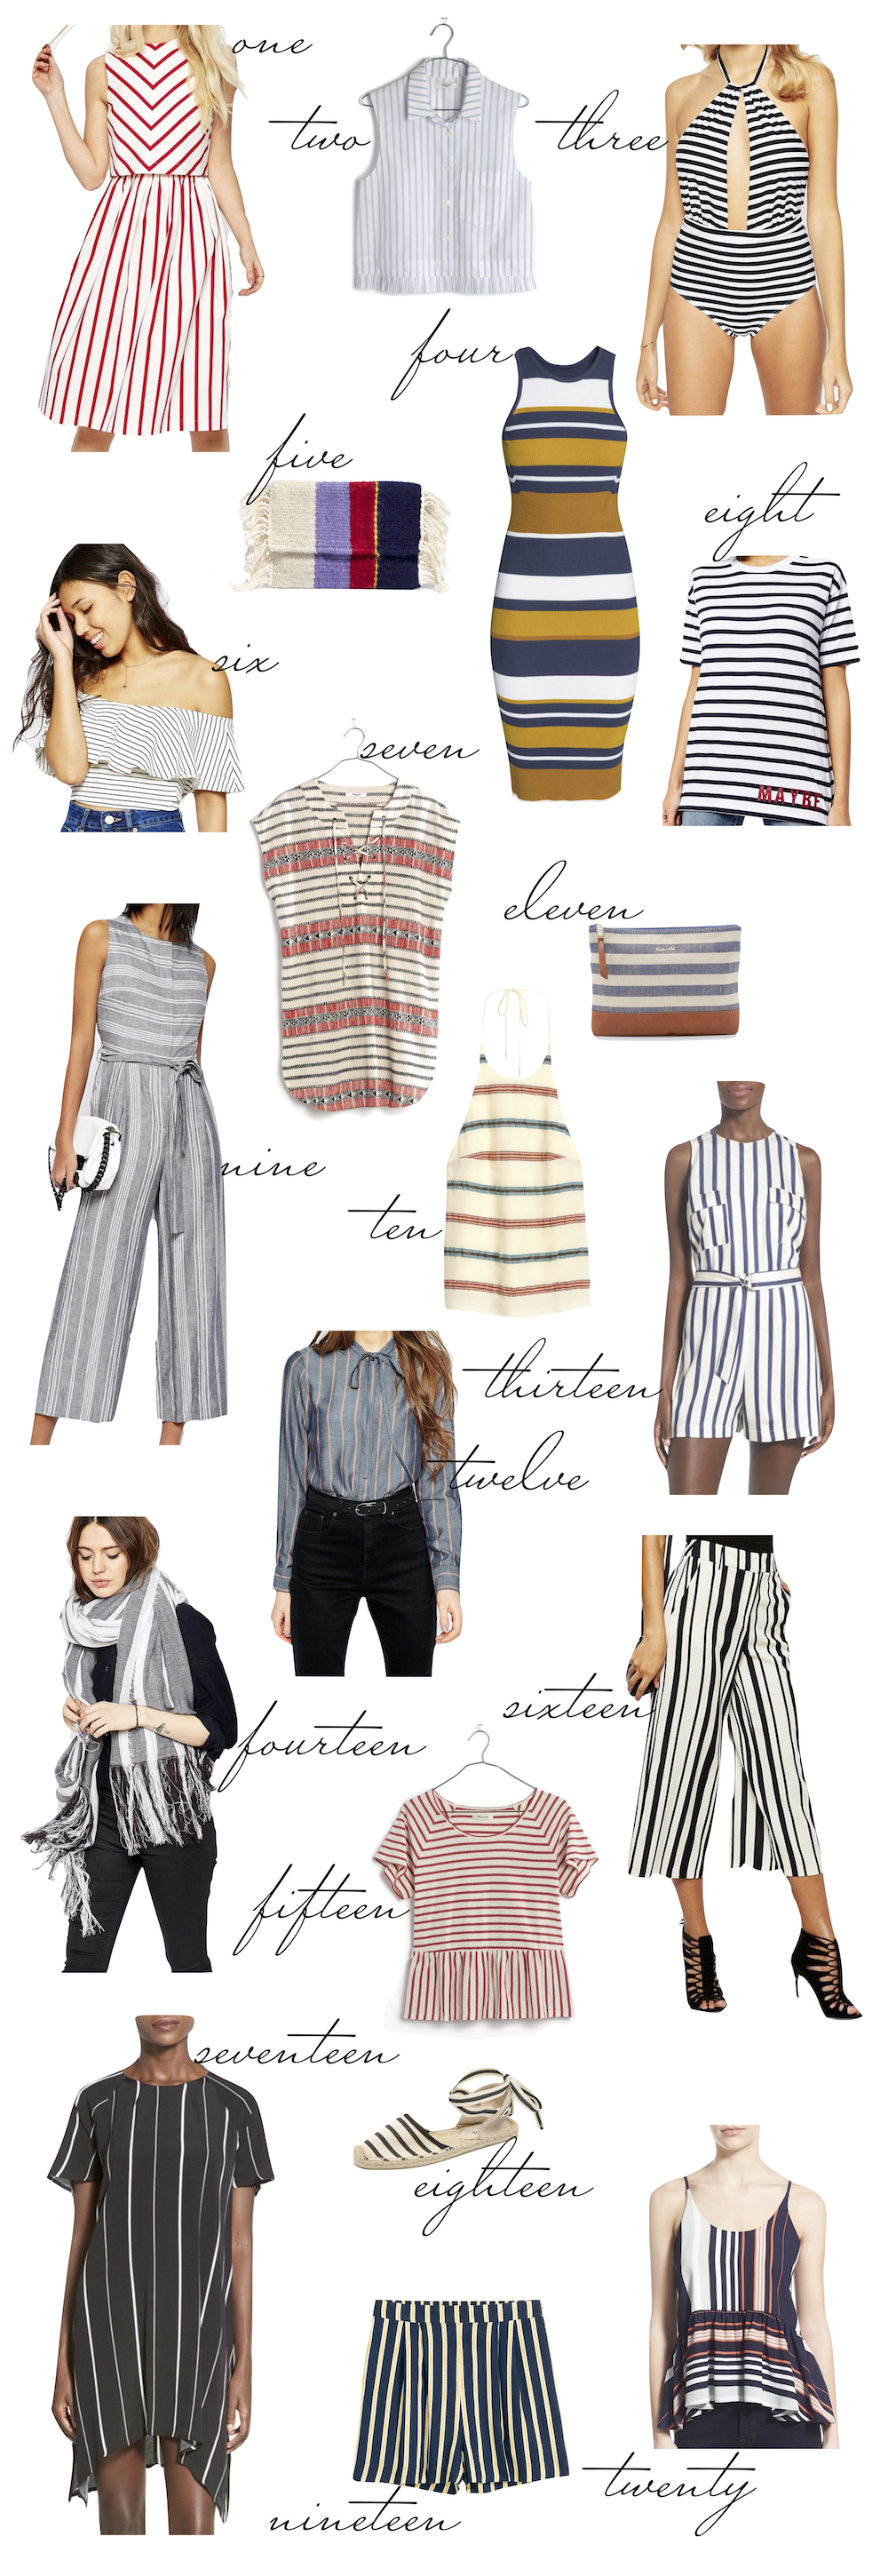 Striped Picks for under $100 - Kelly's Chic Under $100... The Stripe